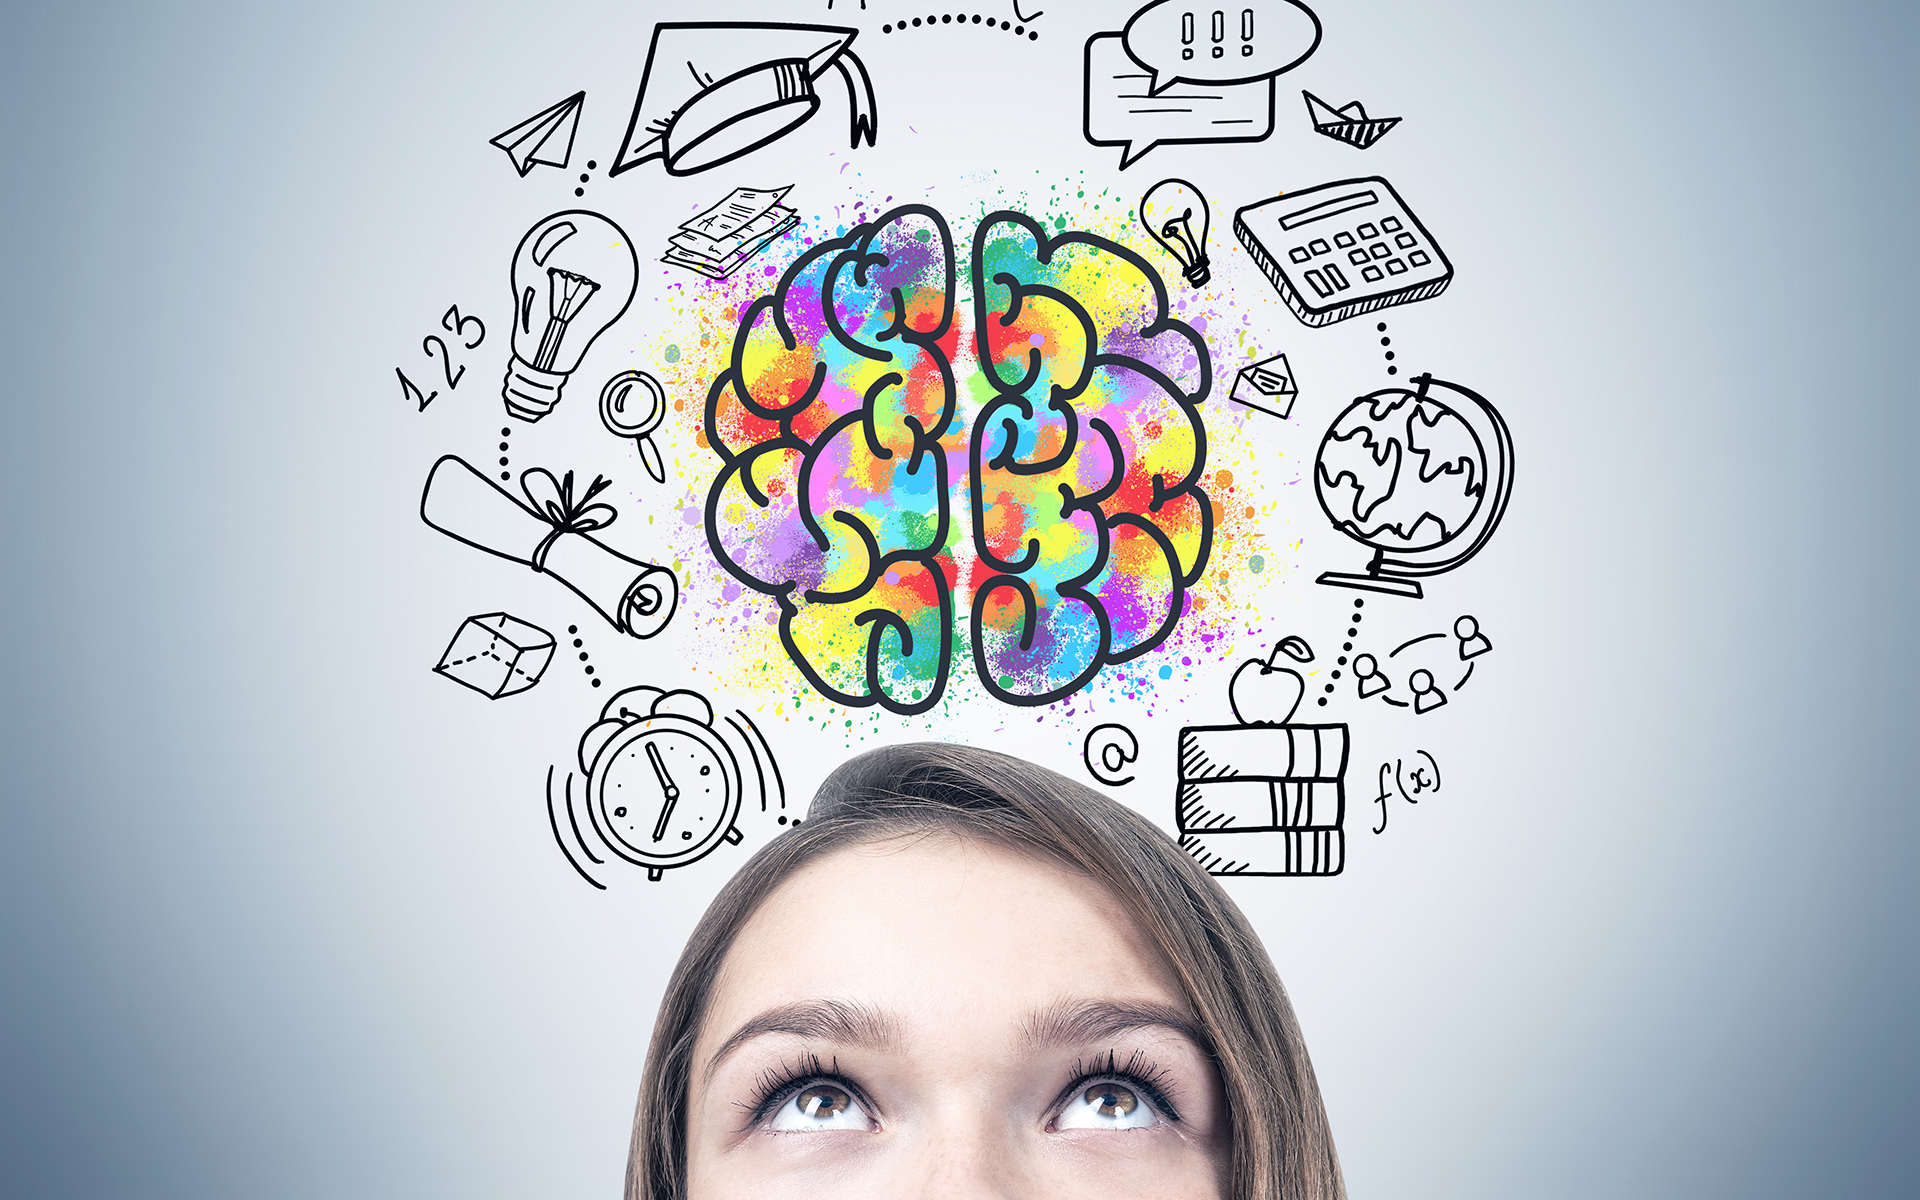 8 ways to care for your amazing brain - woman's head with illustration of brain and thoughts